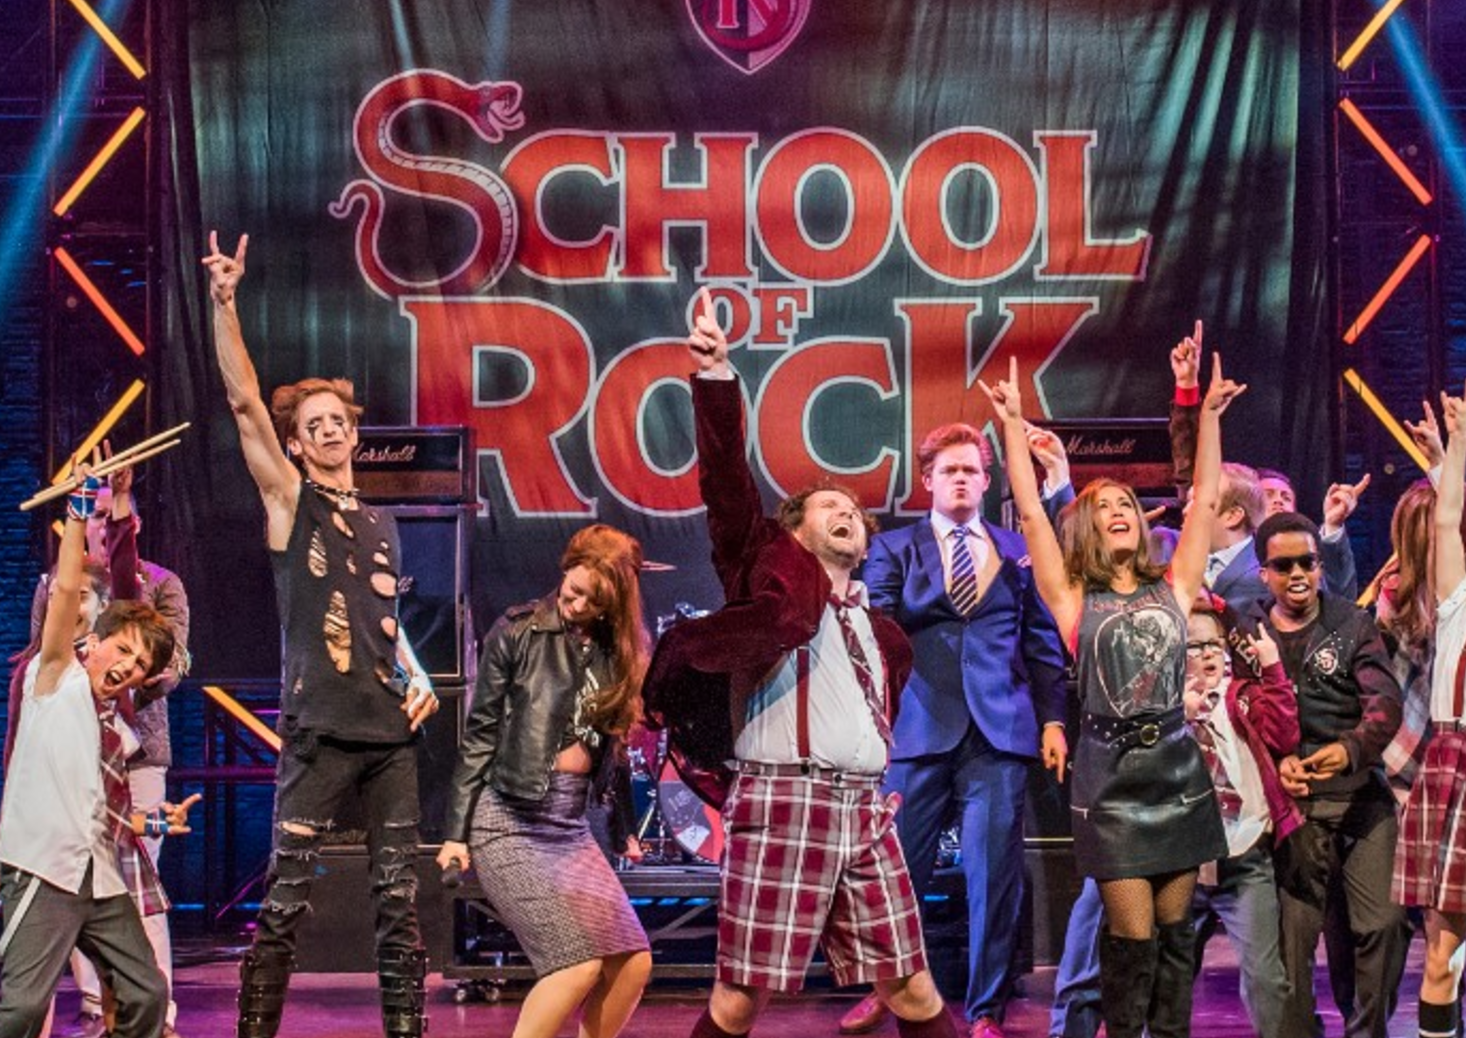 school-of-rock-welcomes-new-kids-and-extends-into-2019